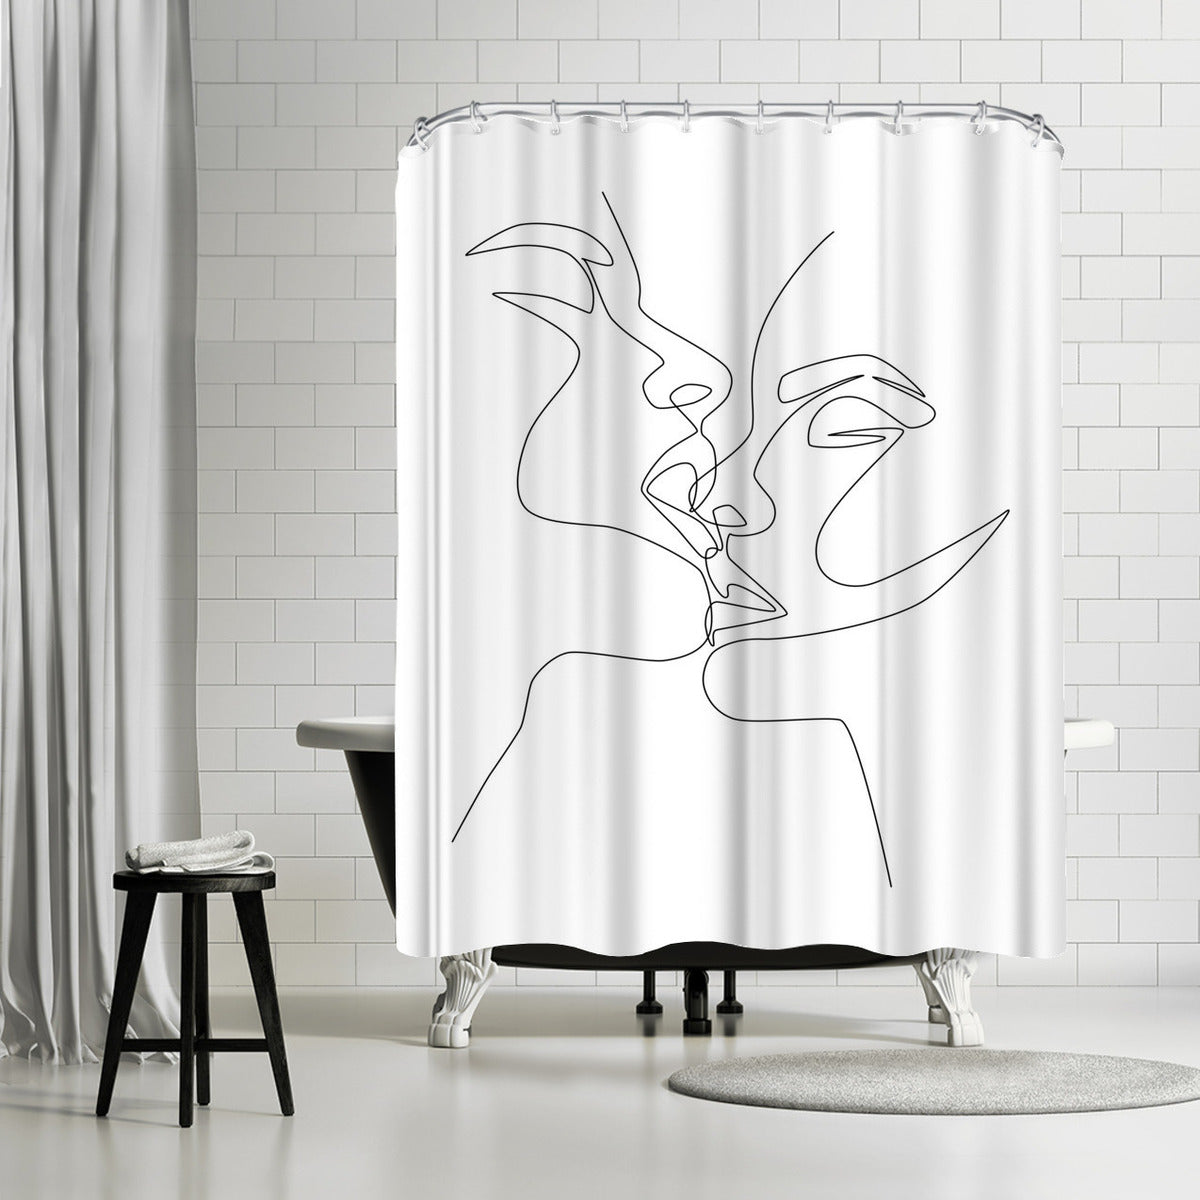 Intense & Intimate by Explicit Design Shower Curtain - Shower Curtain - Americanflat